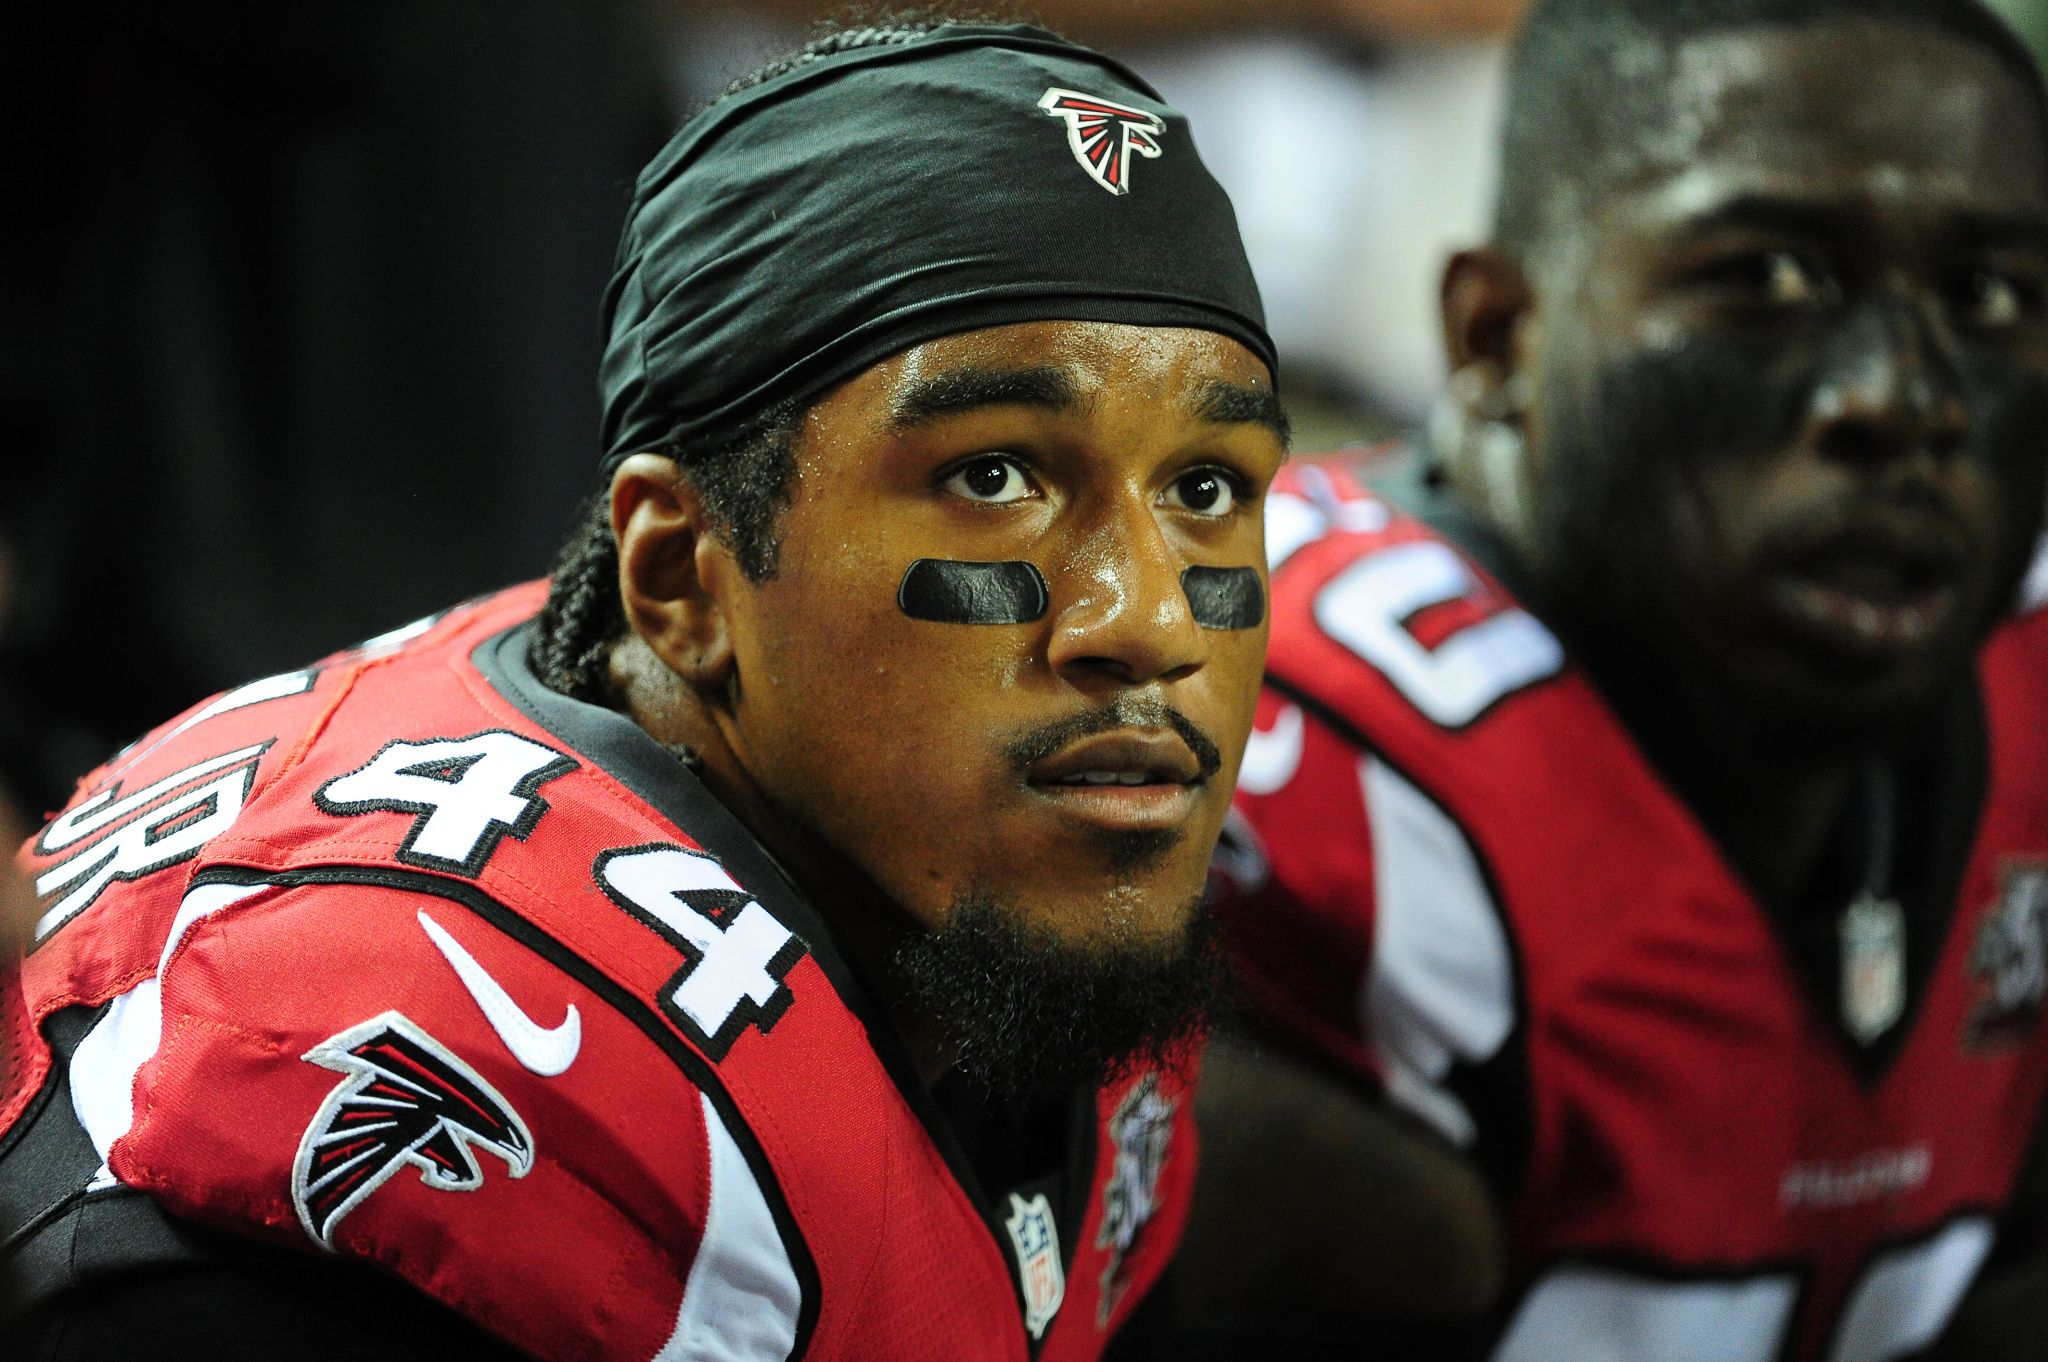 Falcons Vic Beasley explodes onto scene in second season